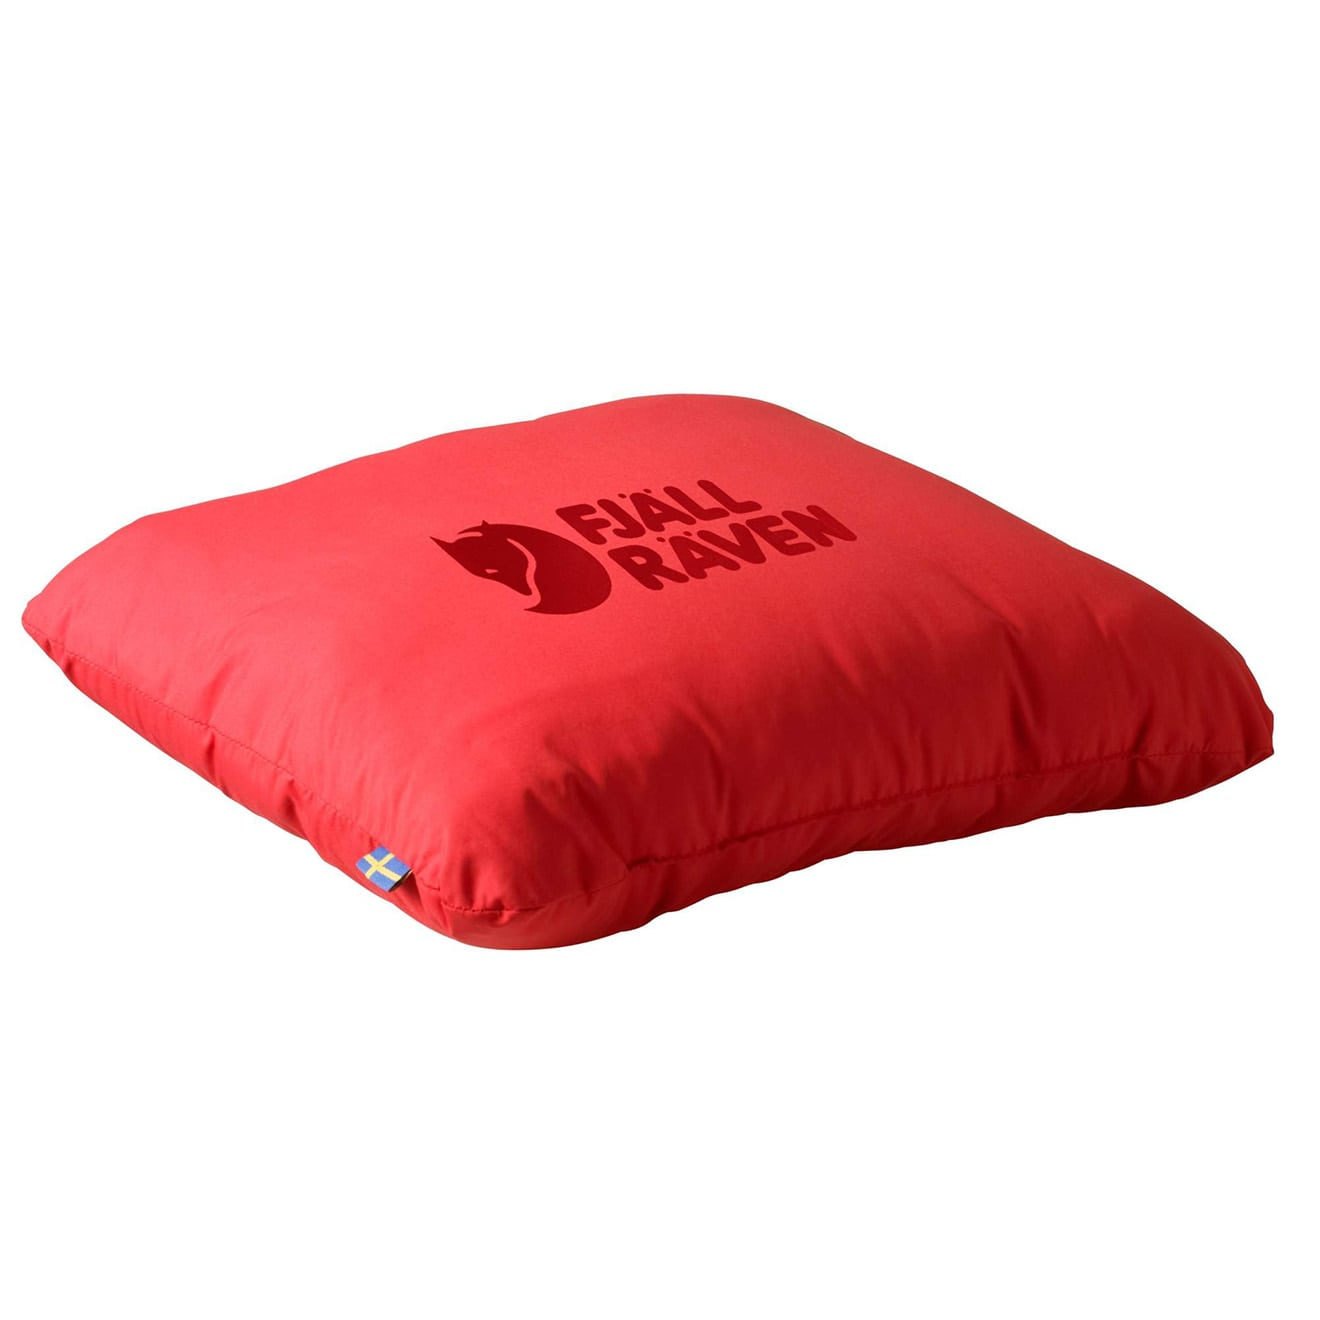 Fjallraven Travel Pillow Red | The